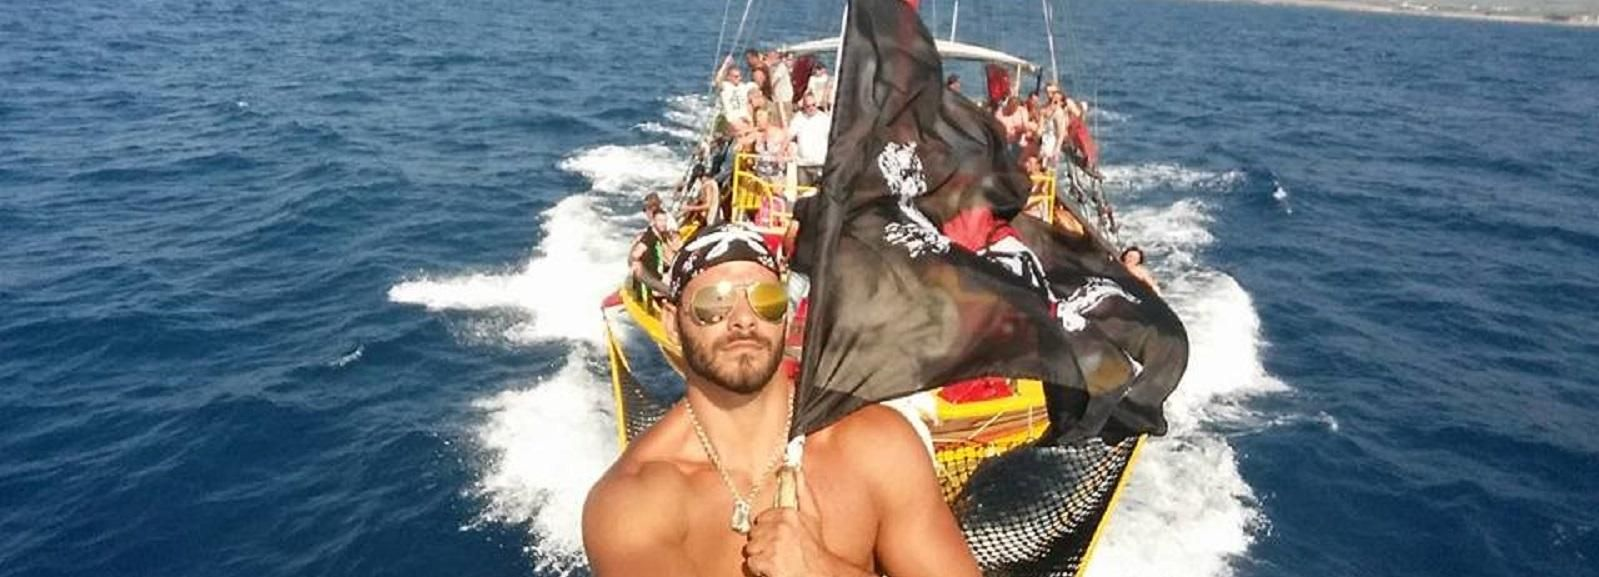 Black Rose Pirate Boat: 5-Hour Trip from Heraklion